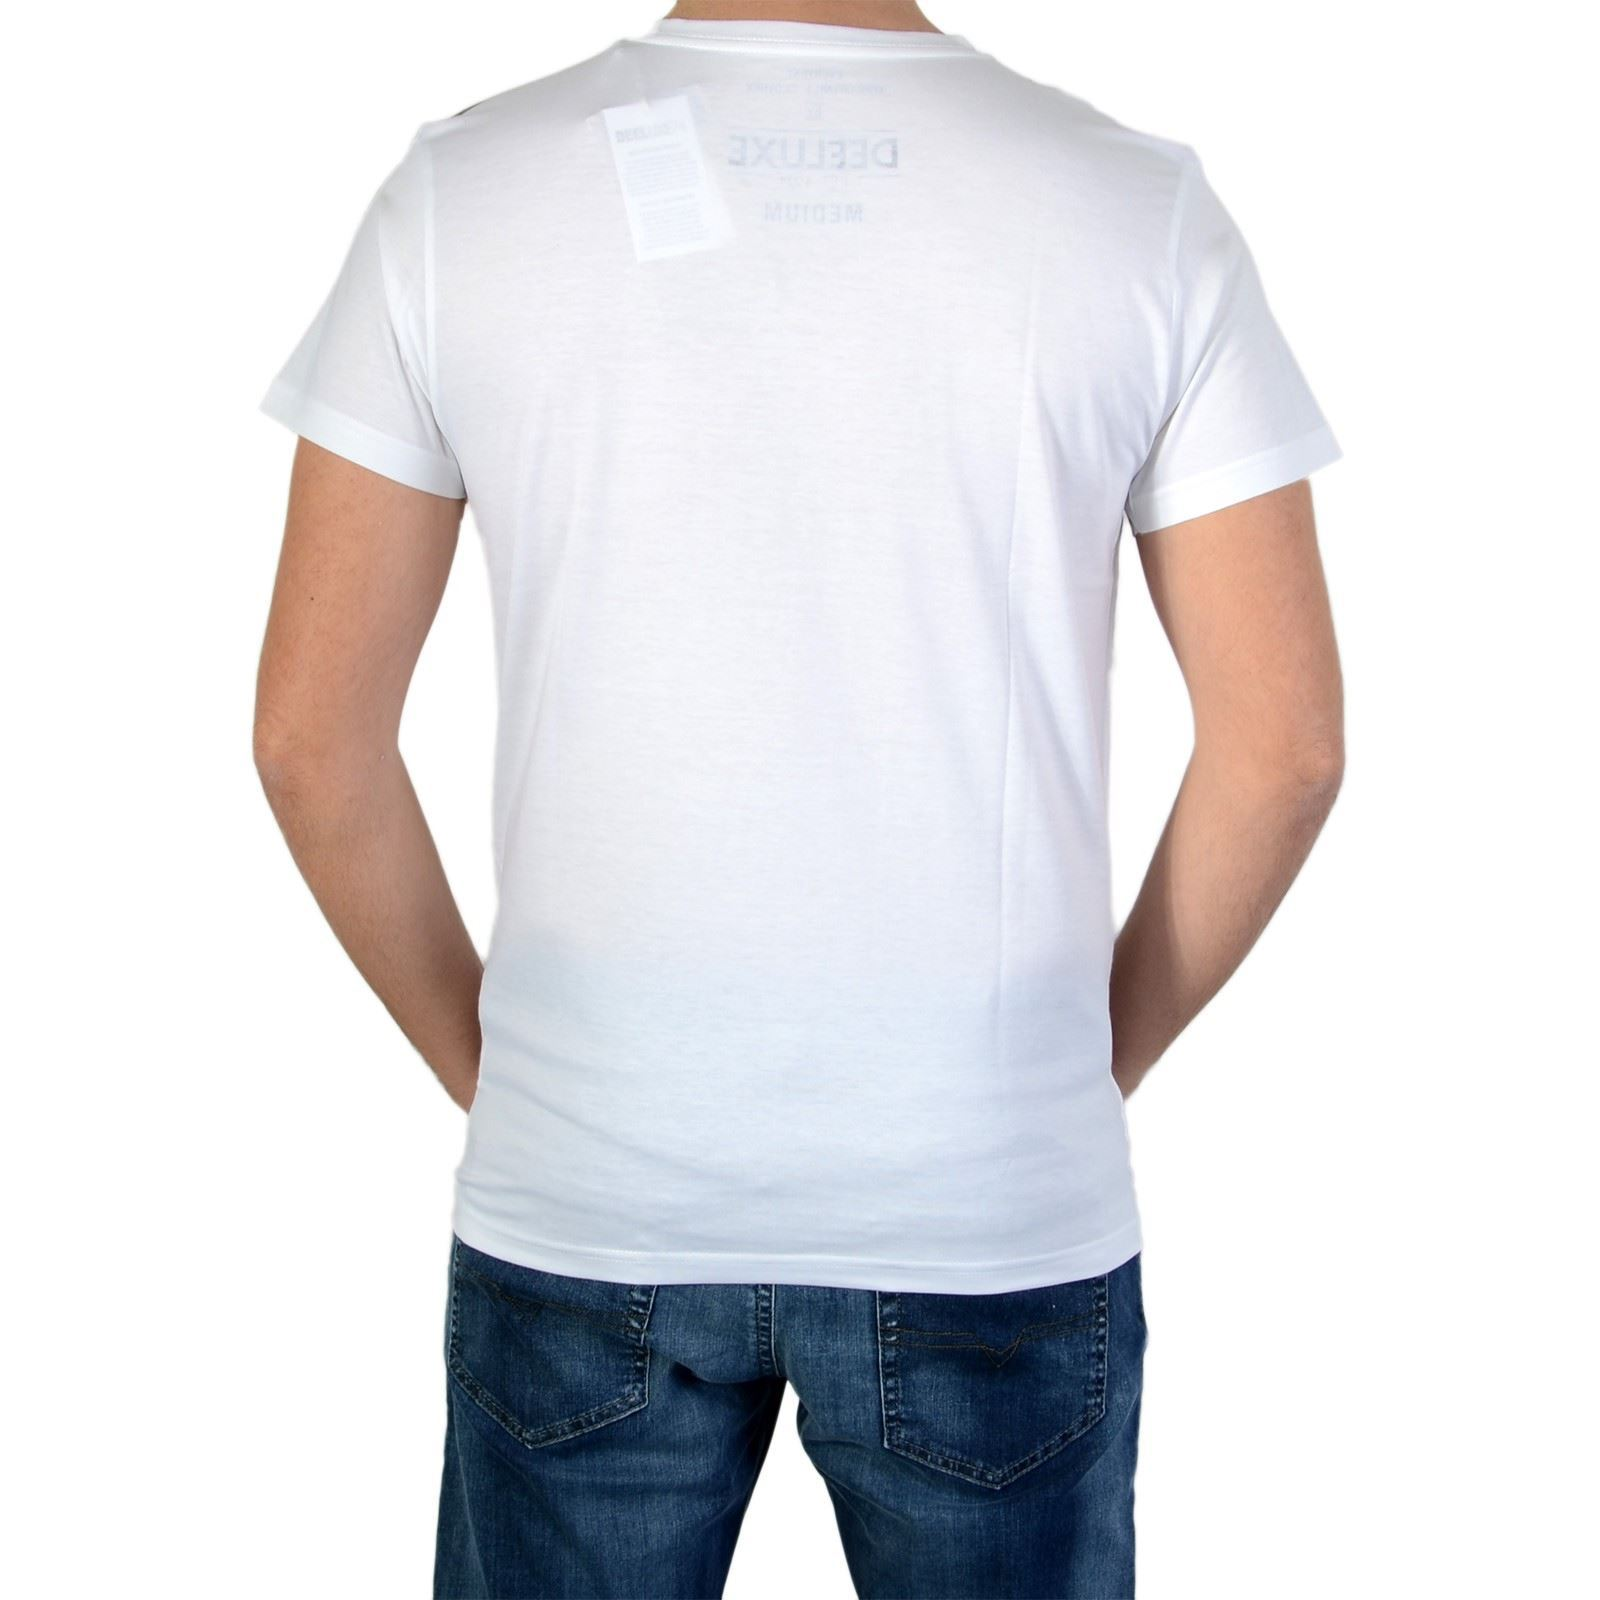 V Courtes Homme AllworldT shirt Manches Blanc Deeluxe fby76g